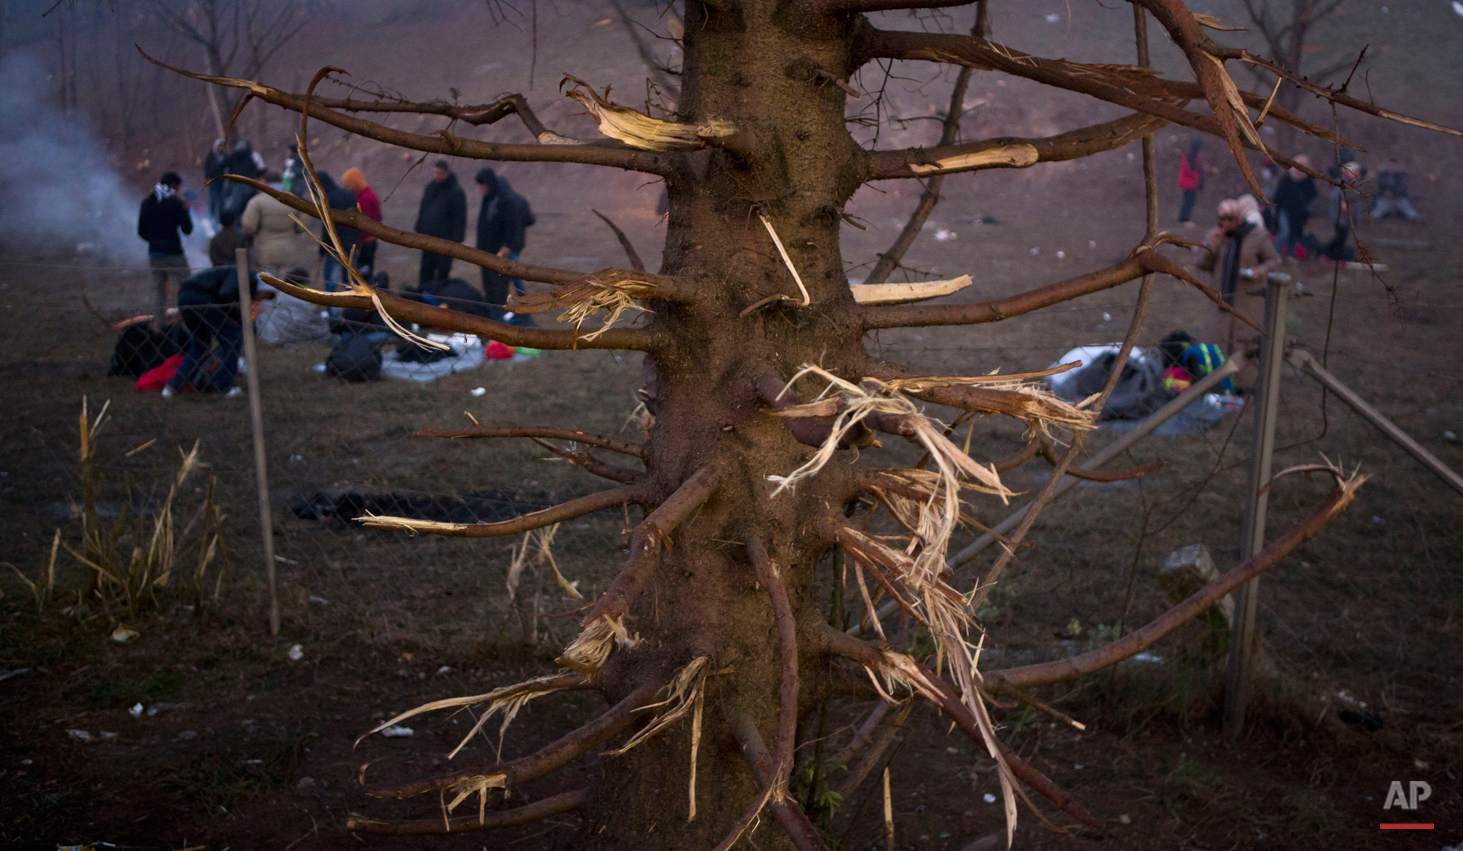 In this photo made on Thursday, Nov. 5, 2015, migrants prepare to spend a night in the open air, near a tree whose branches were cut for firewood, in Sentilj, Slovenia, near the border with Austria. (AP Photo/Darko Bandic)